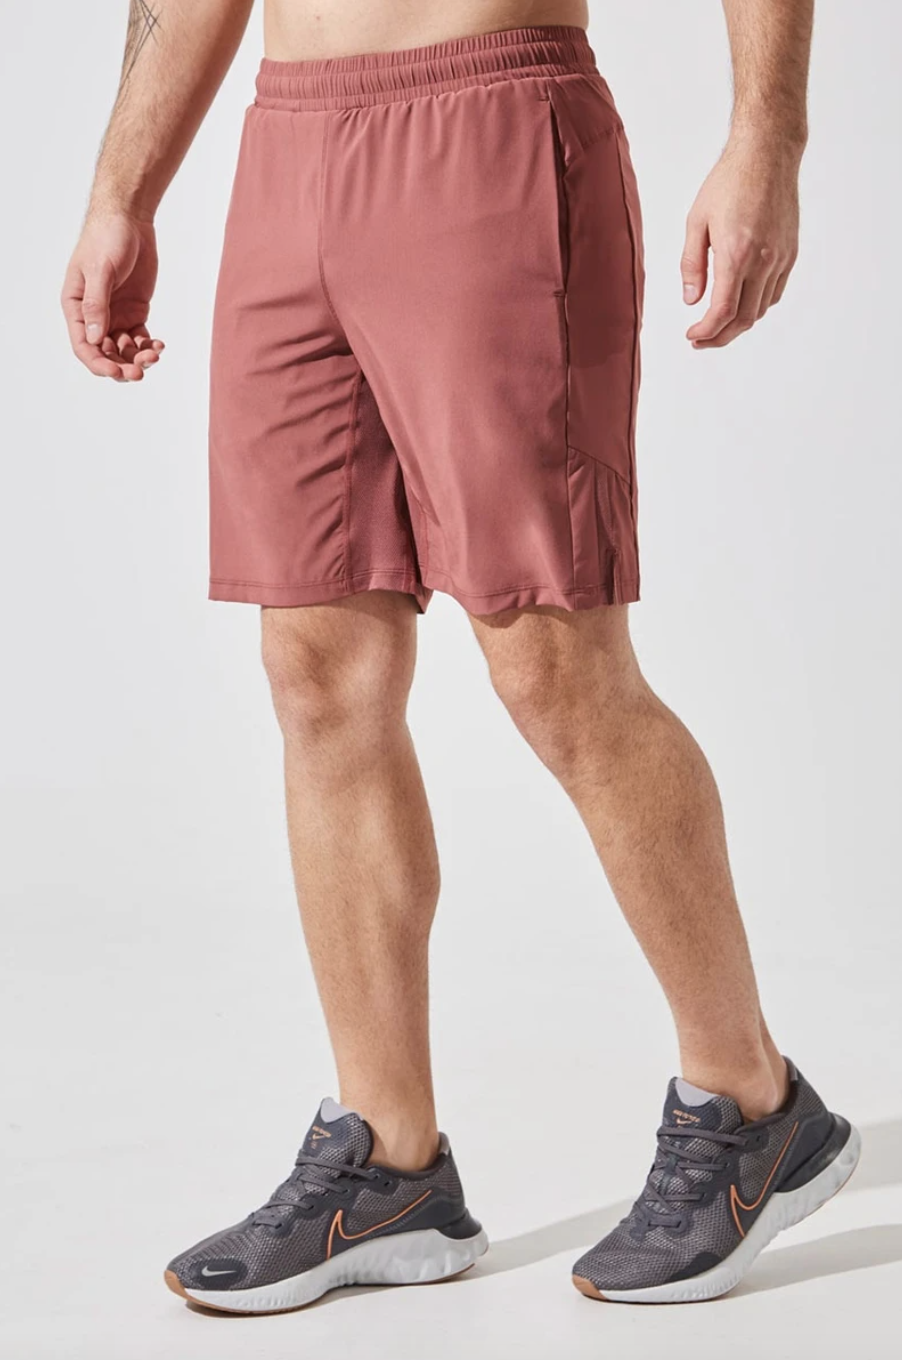 """Crux 9"""" Recycled Polyester Short with Liner in Salmon (Photo via MPG)"""